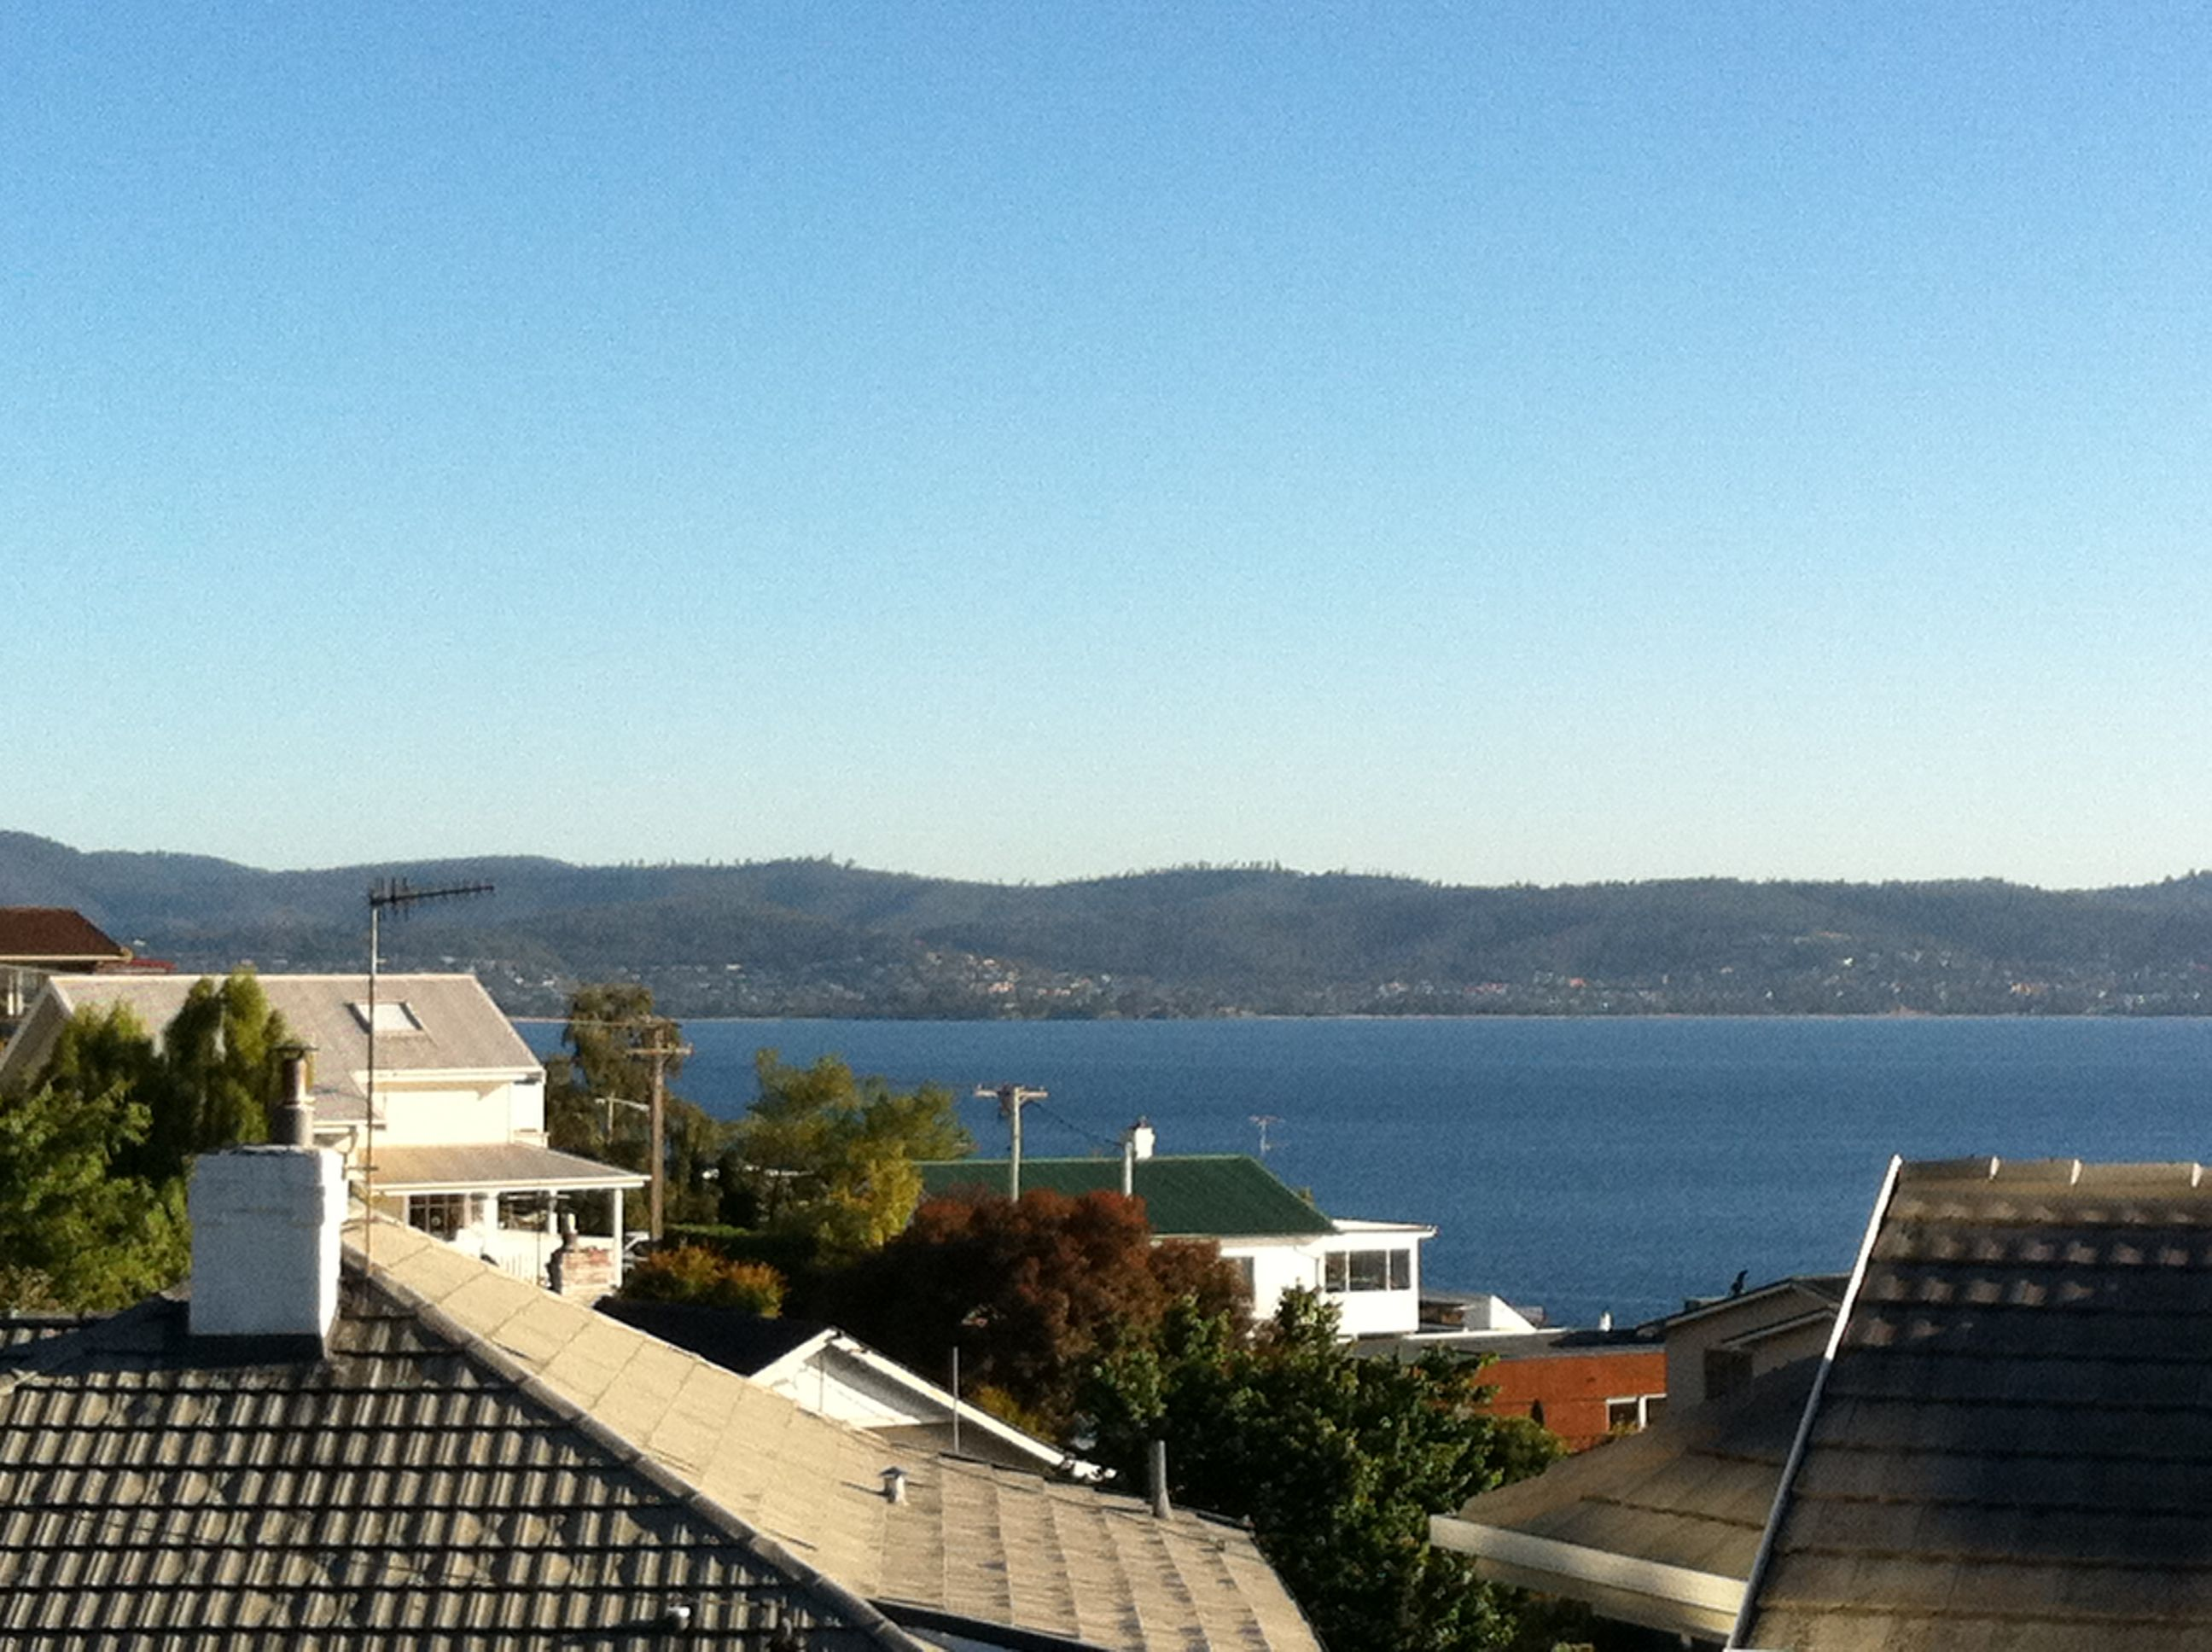 The sun does shine in Hobart. Who would have thought?